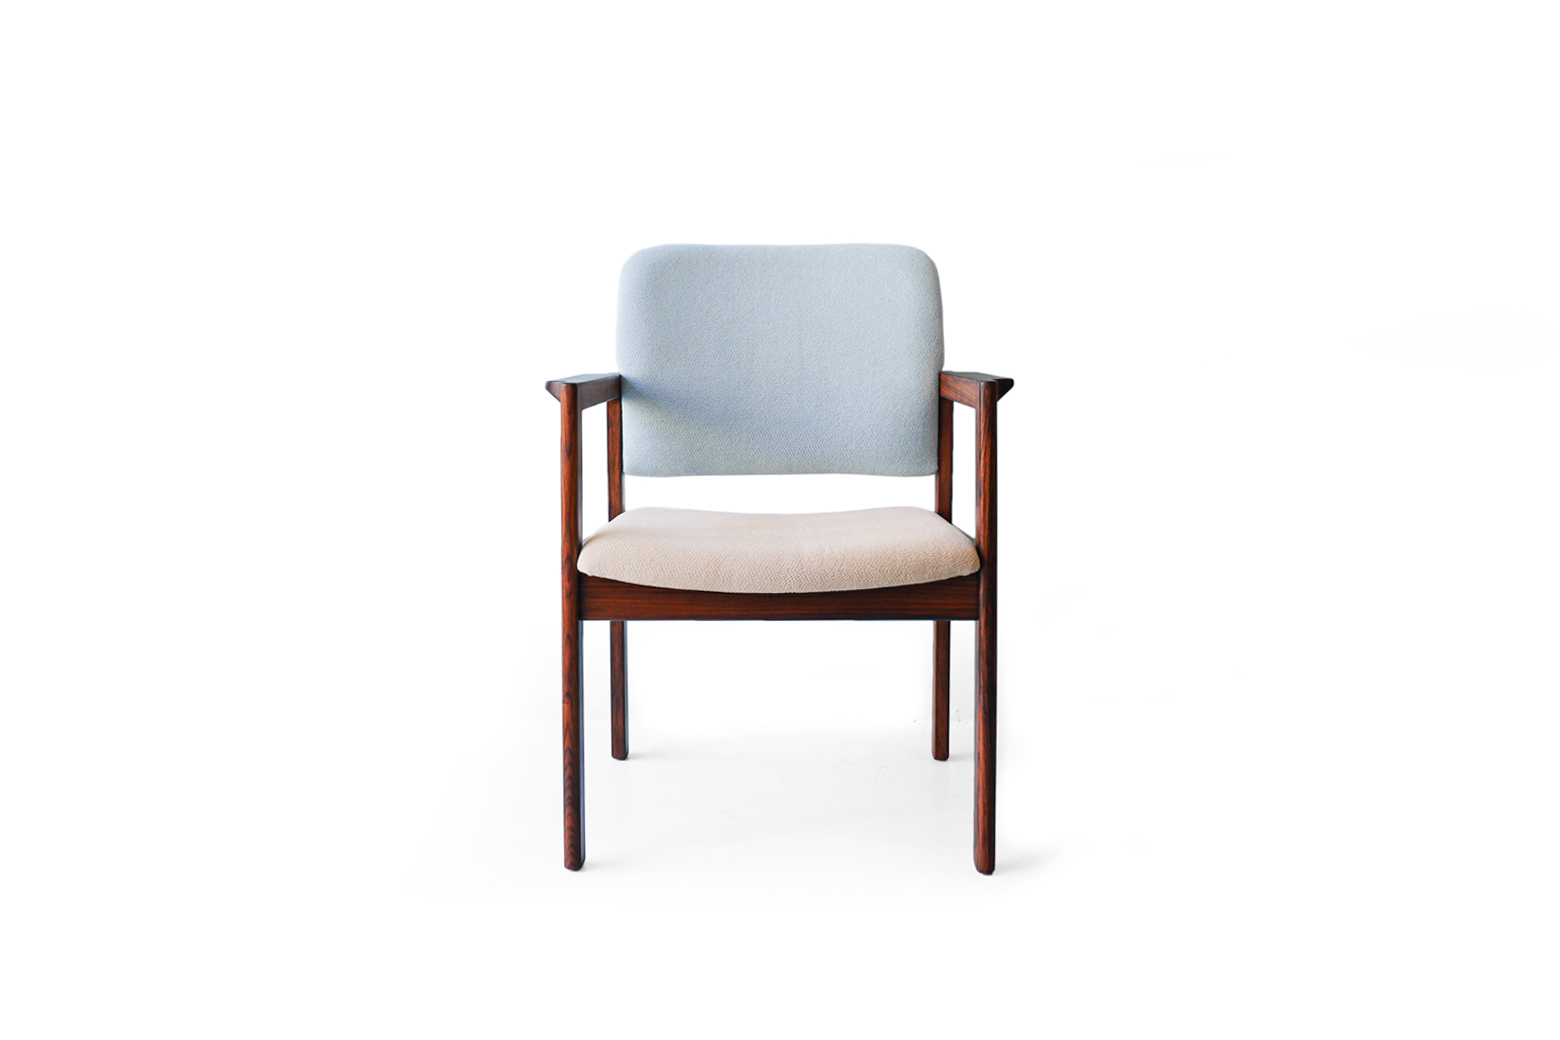 Bjerringbro Kontor Møbler Rosewood Arm Chair/デンマーク ヴィンテージ ローズウッド アームチェア 椅子 北欧家具